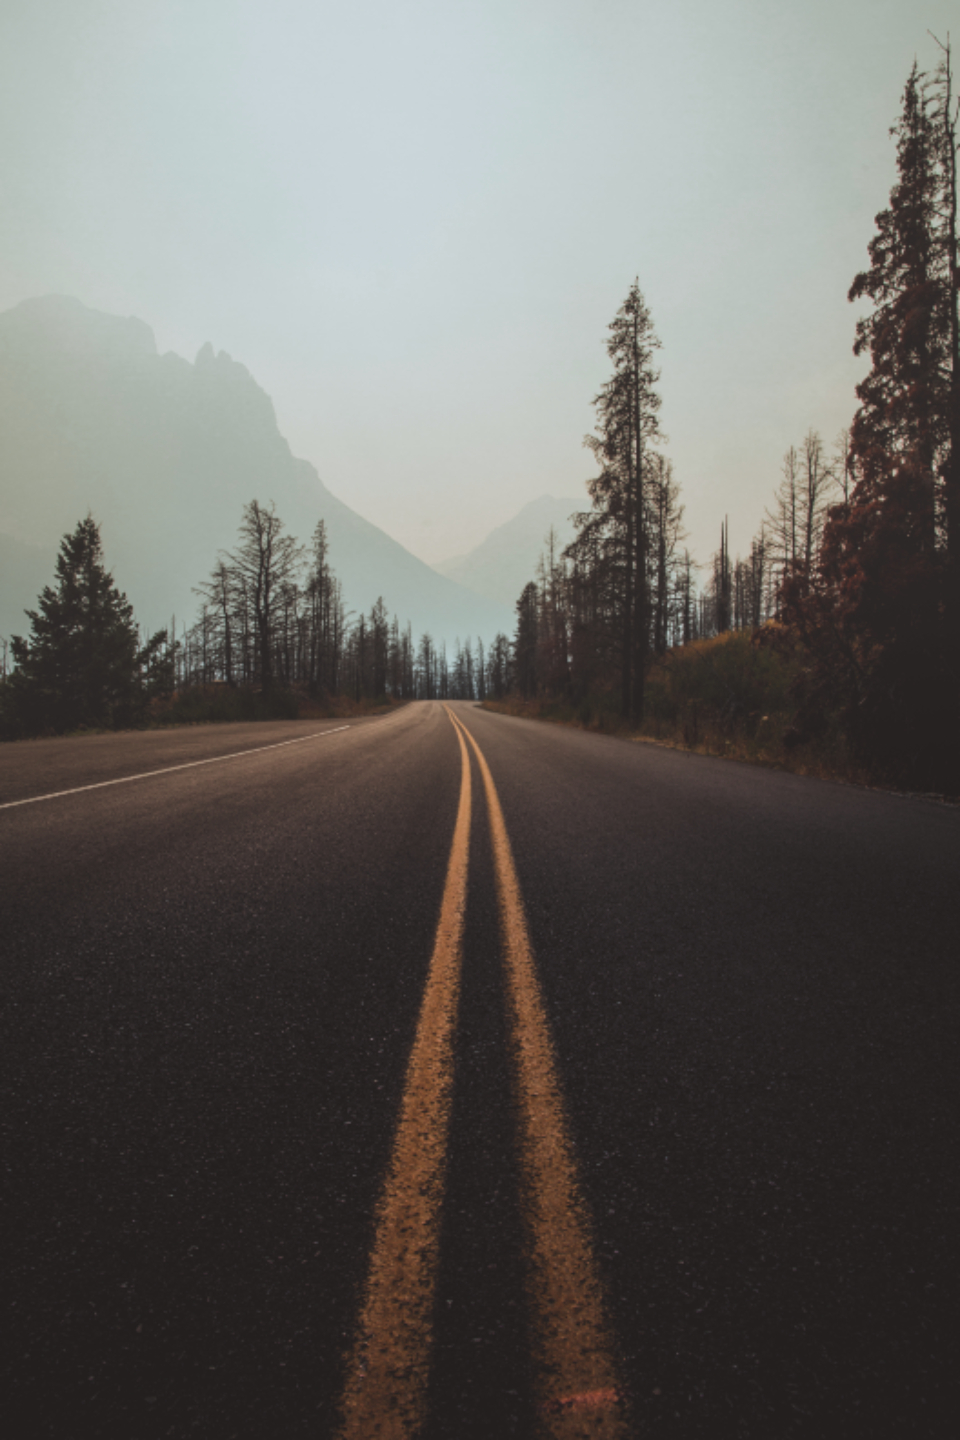 road movement drive driving pavement desert dirt landscape nature outdoors trees mountains mountain travelling travel